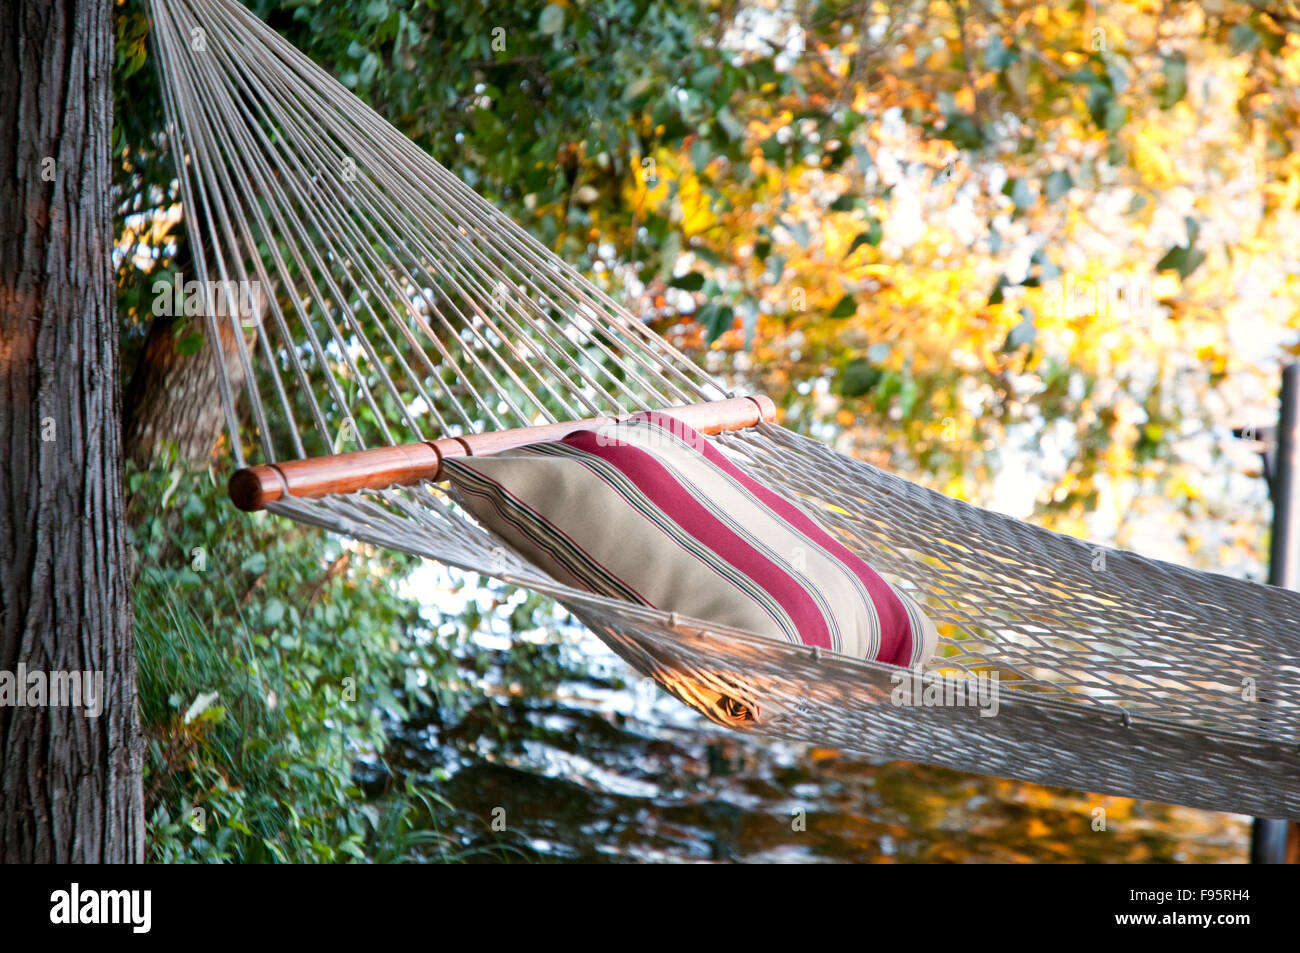 A hammock waits for a lazy afternoon by Langford Lake, near Victoria, BC Canada, a freshwater lake for swimming, - Stock Image